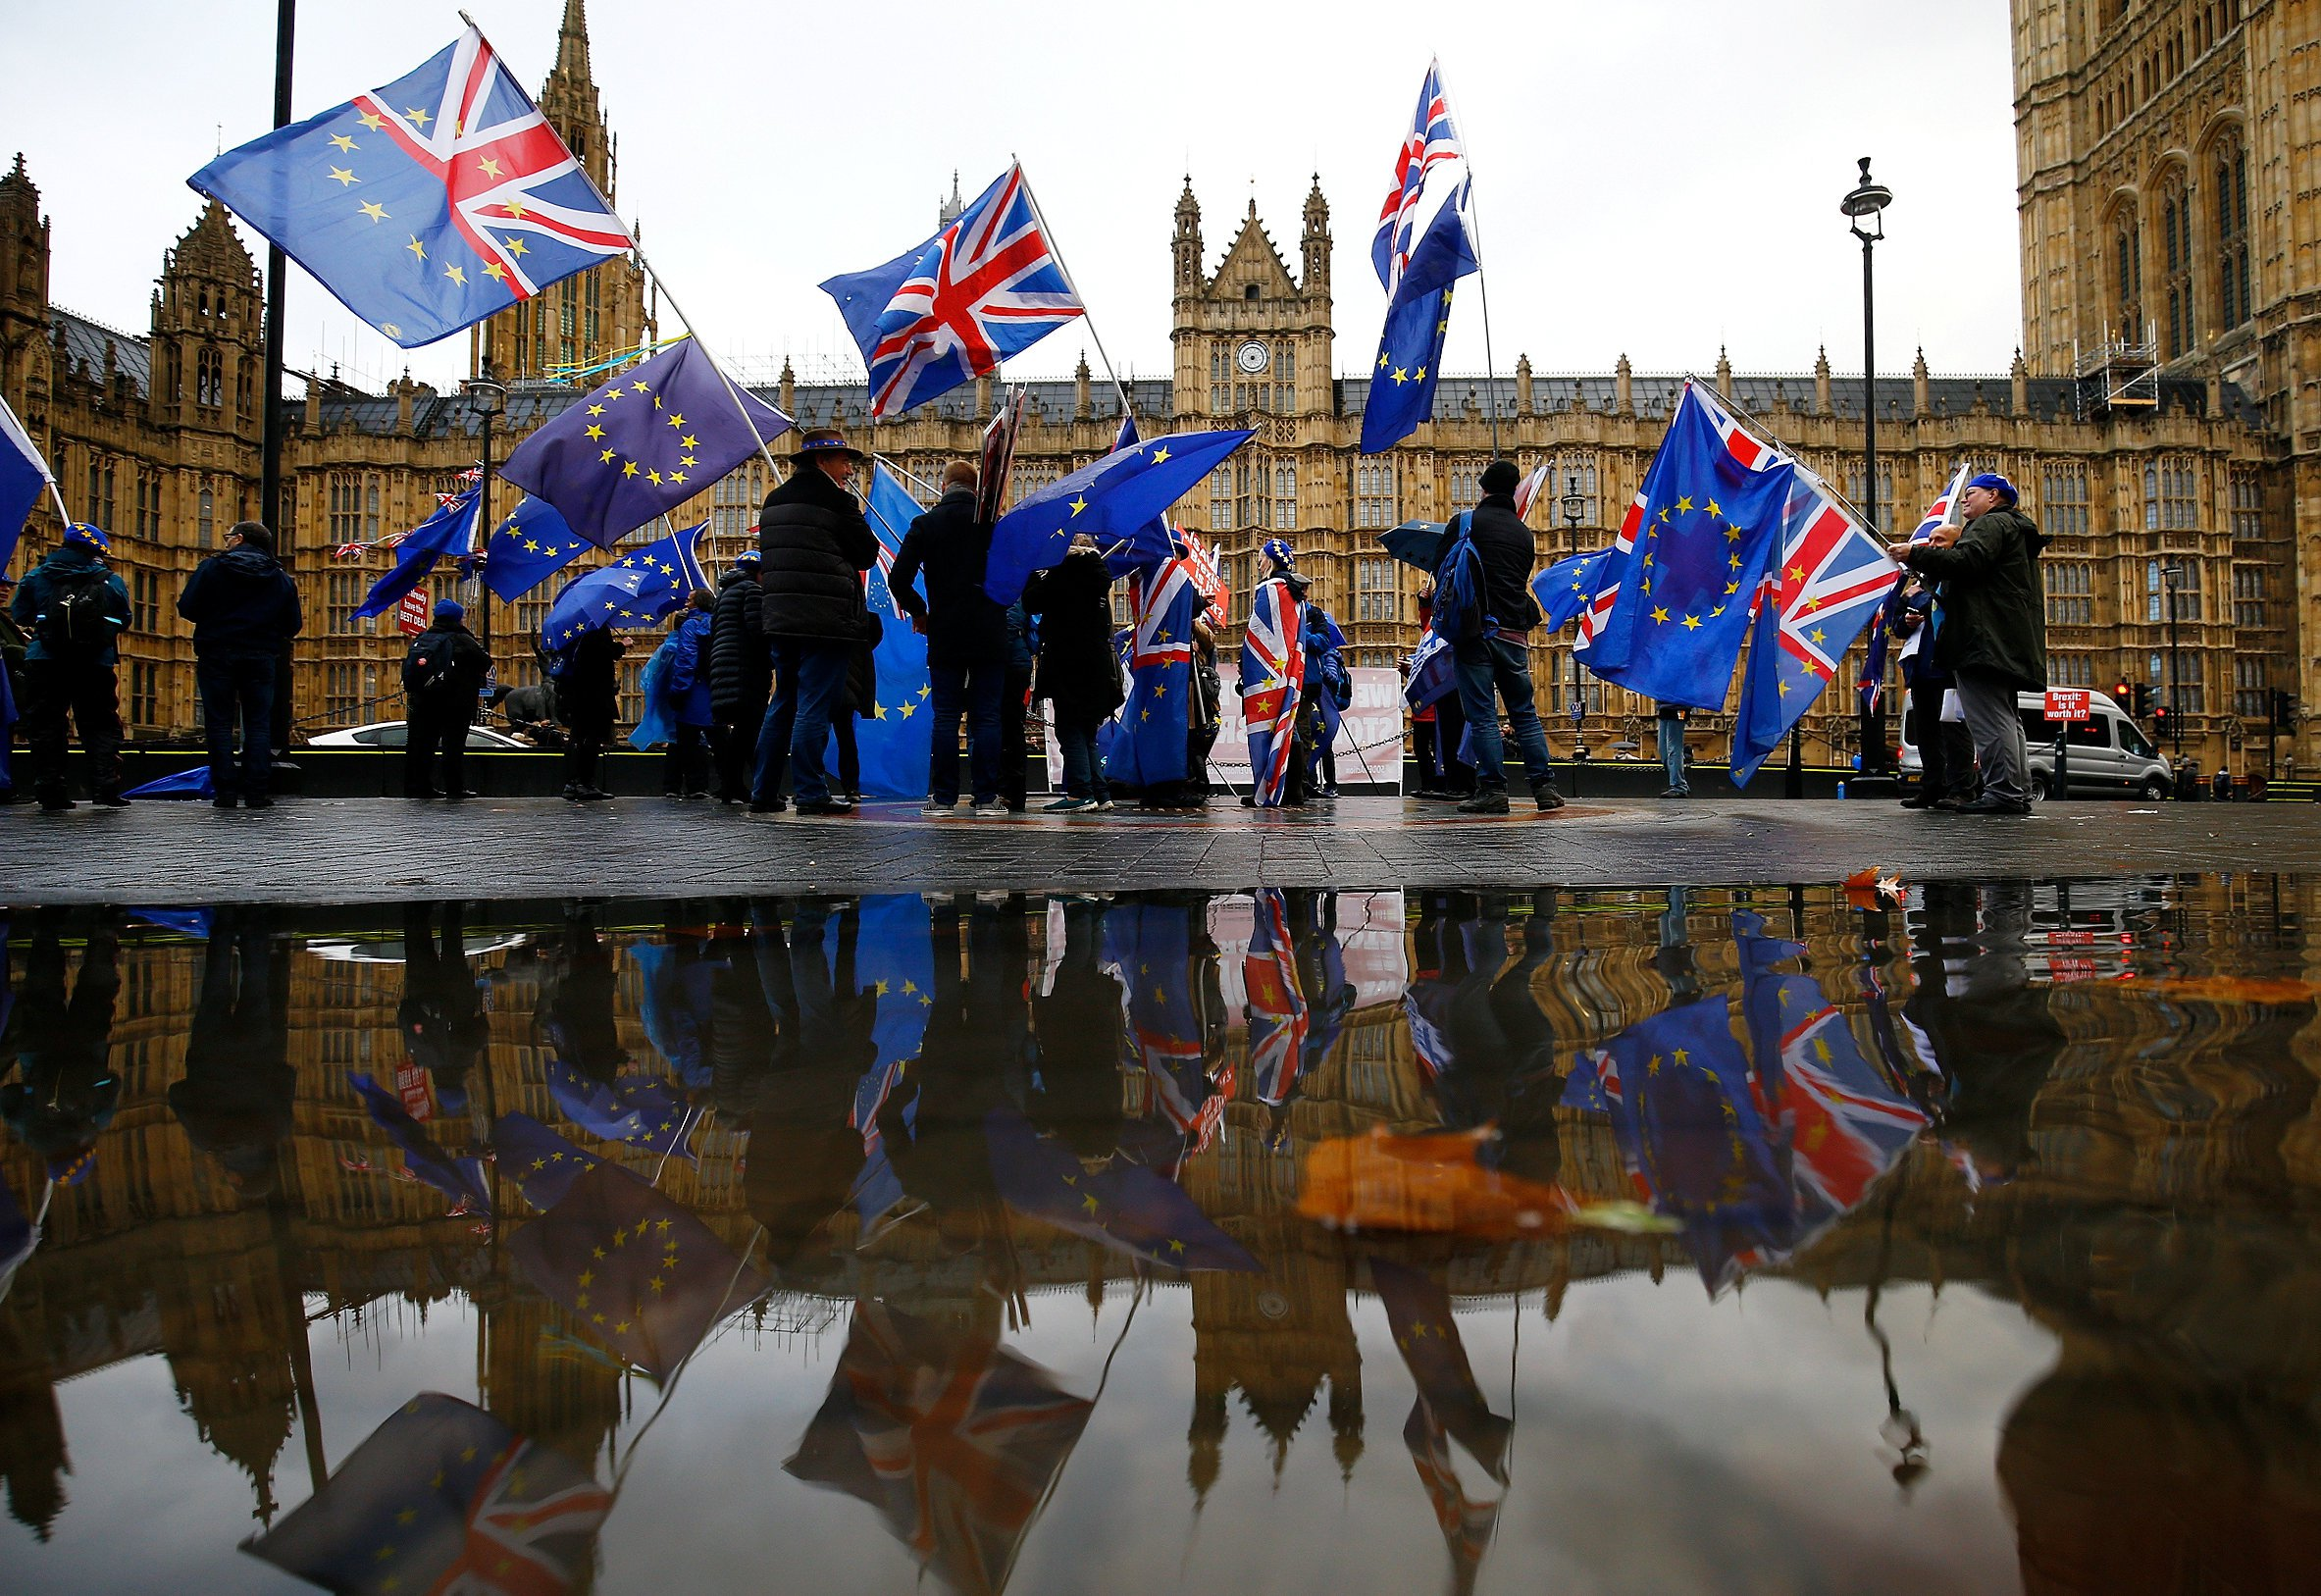 Anti-Brexit demonstrators protest outside the Houses of Parliament in London, Britain, December 3, 2018. REUTERS/Henry Nicholls